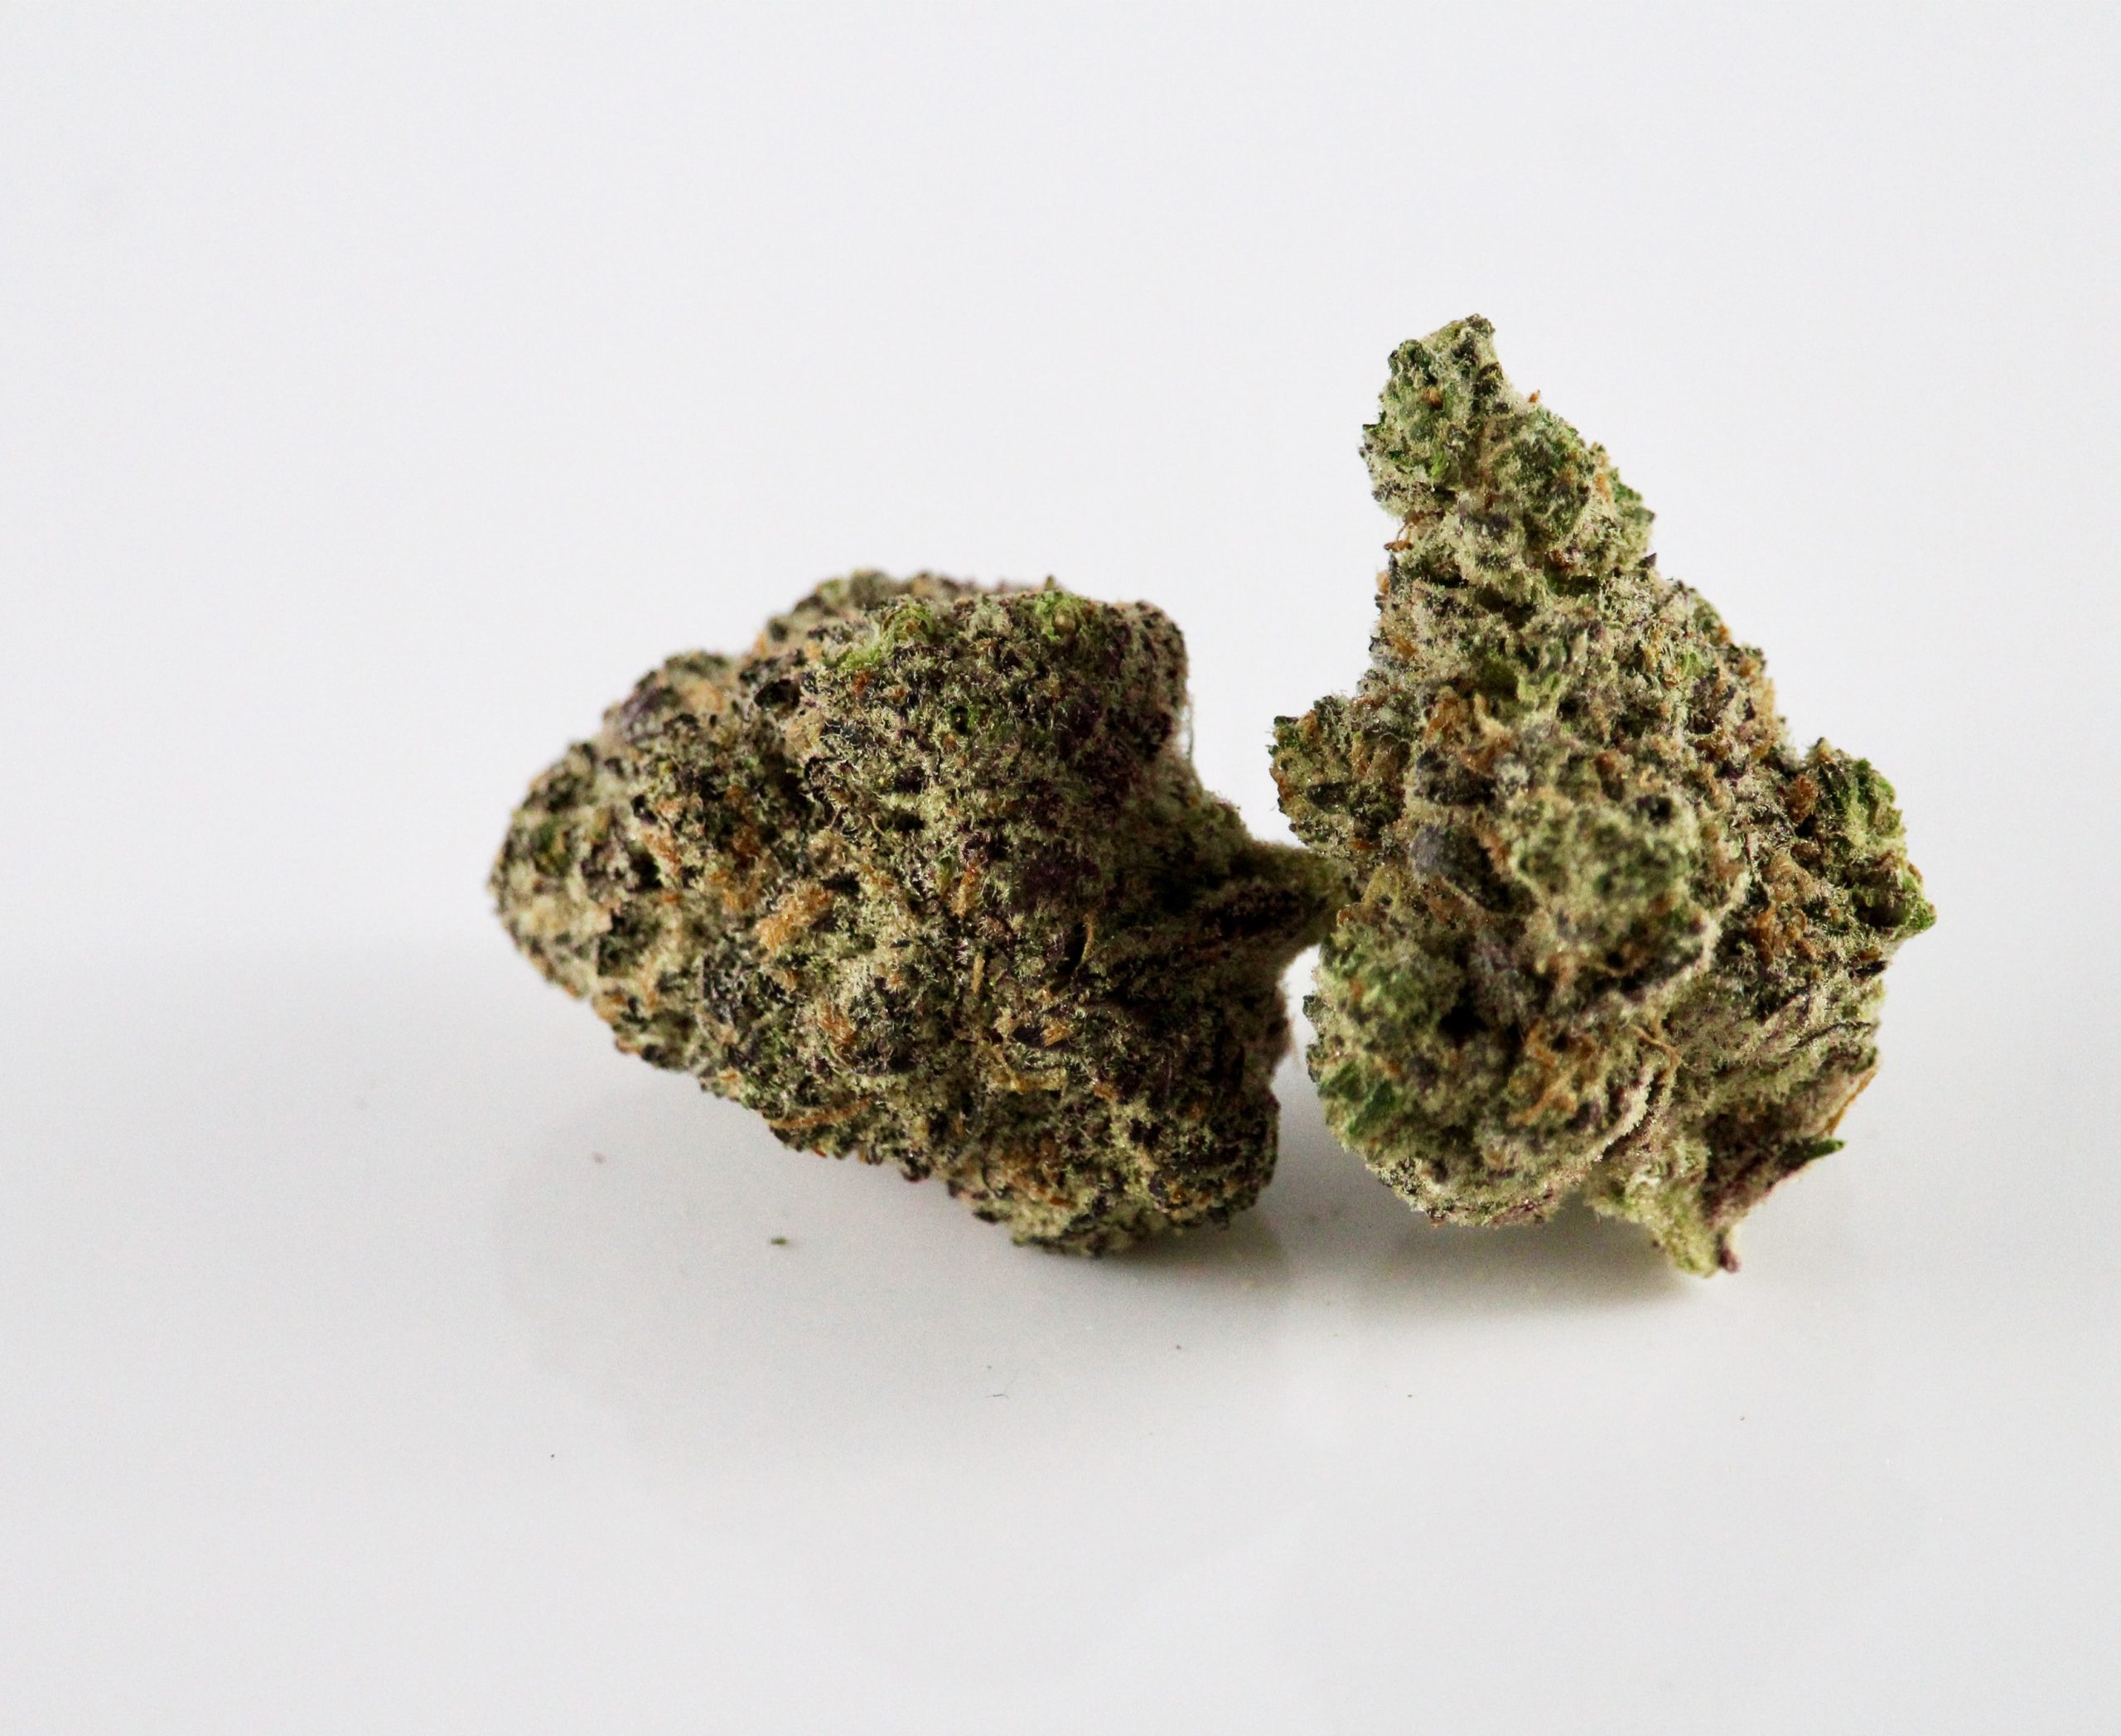 A picture of two cannabis buds.